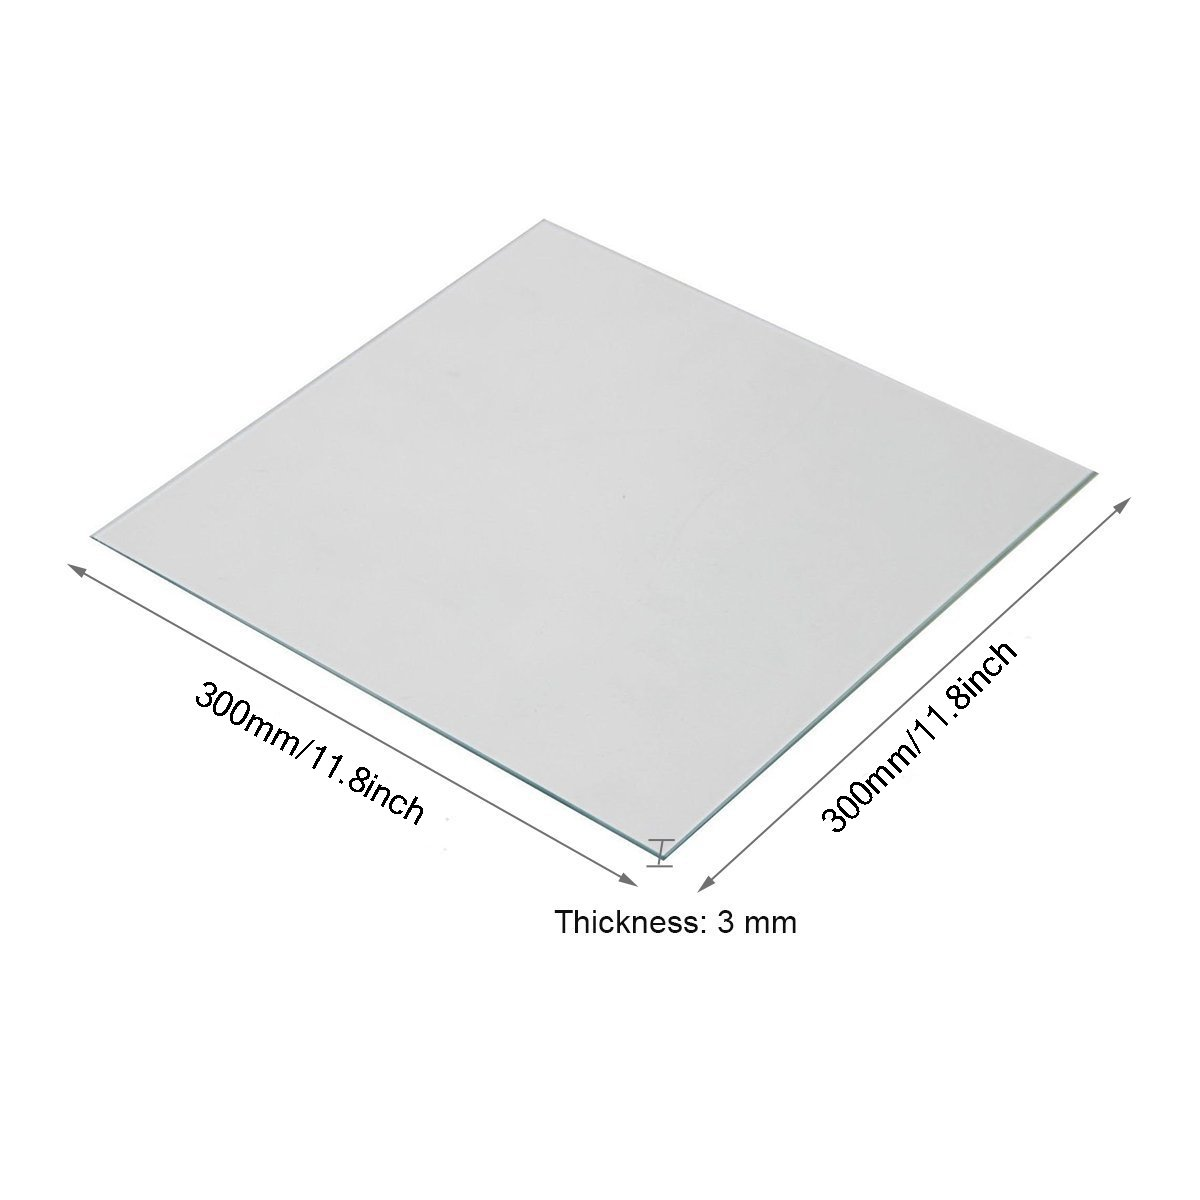 Wisamic Clear Borosilicate Glass Heat Bed 300x300x3mm for 3D Printers Prusa, Tevo Tornado, Mendela, AO Series by Wisamic (Image #1)